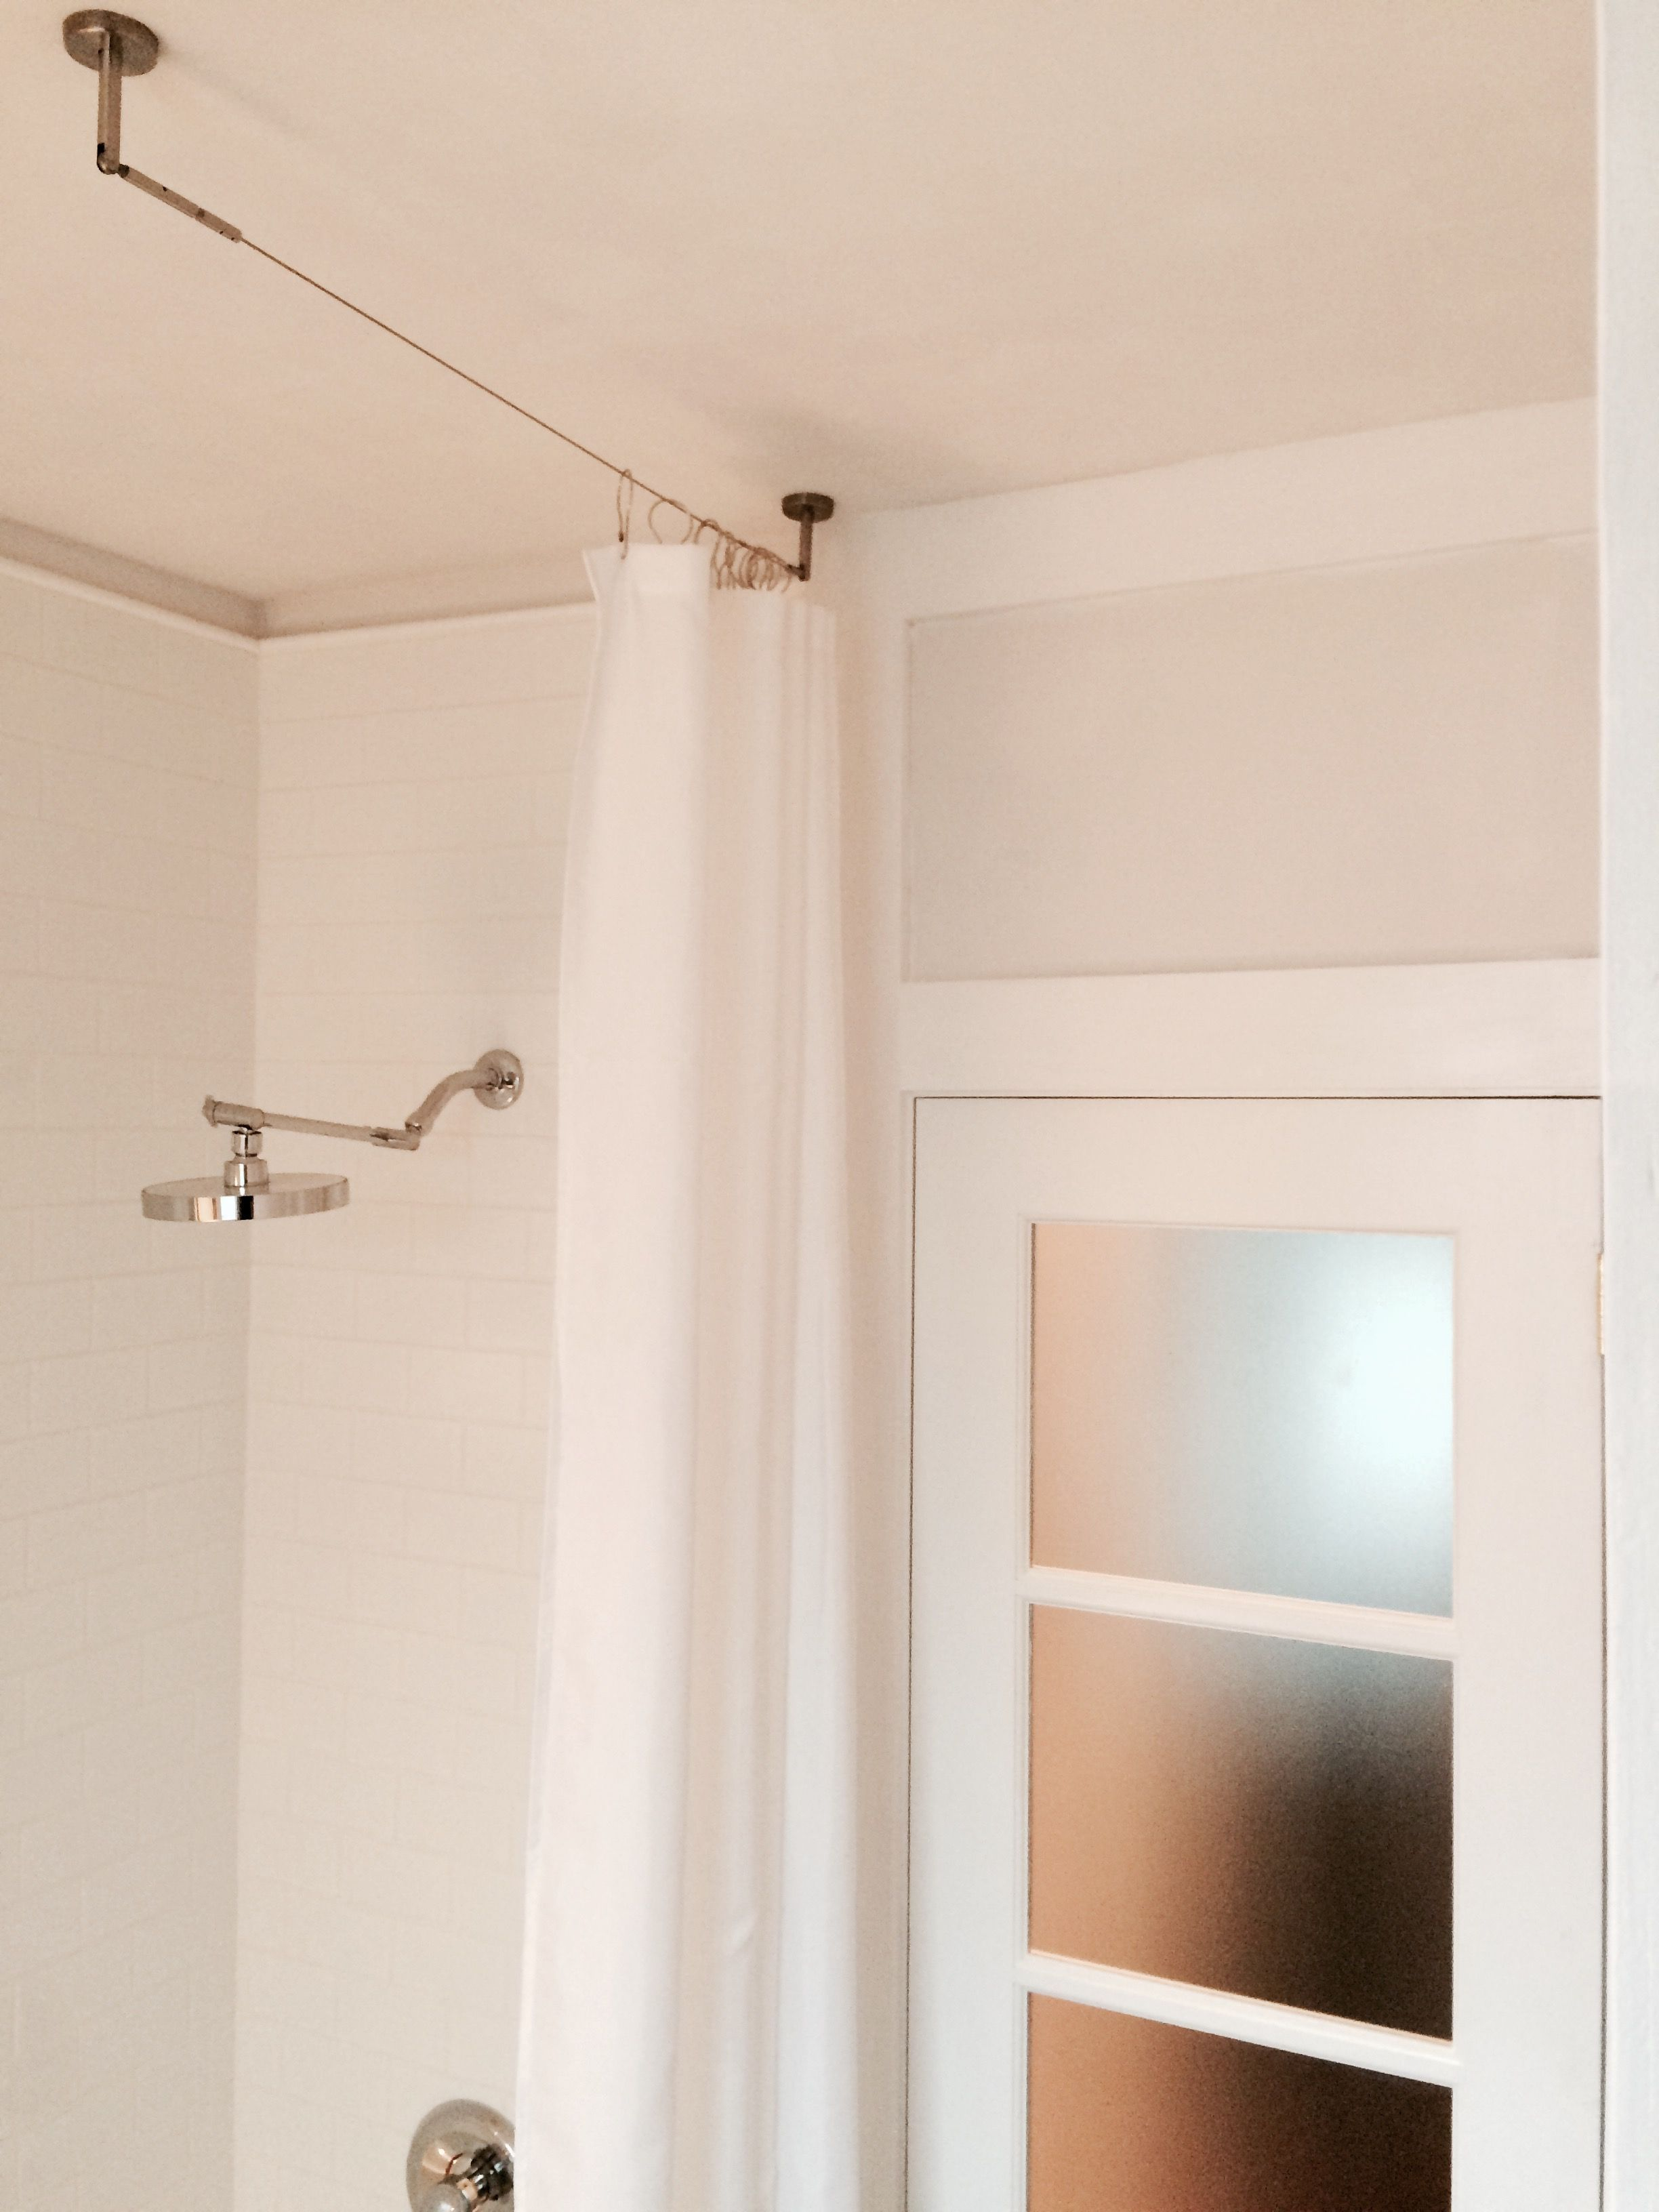 Alternative For Standard Shower Rod Ikea Wireless Curtain Fitting Used Minimalist Extended To Floor Length Brenbradstreet